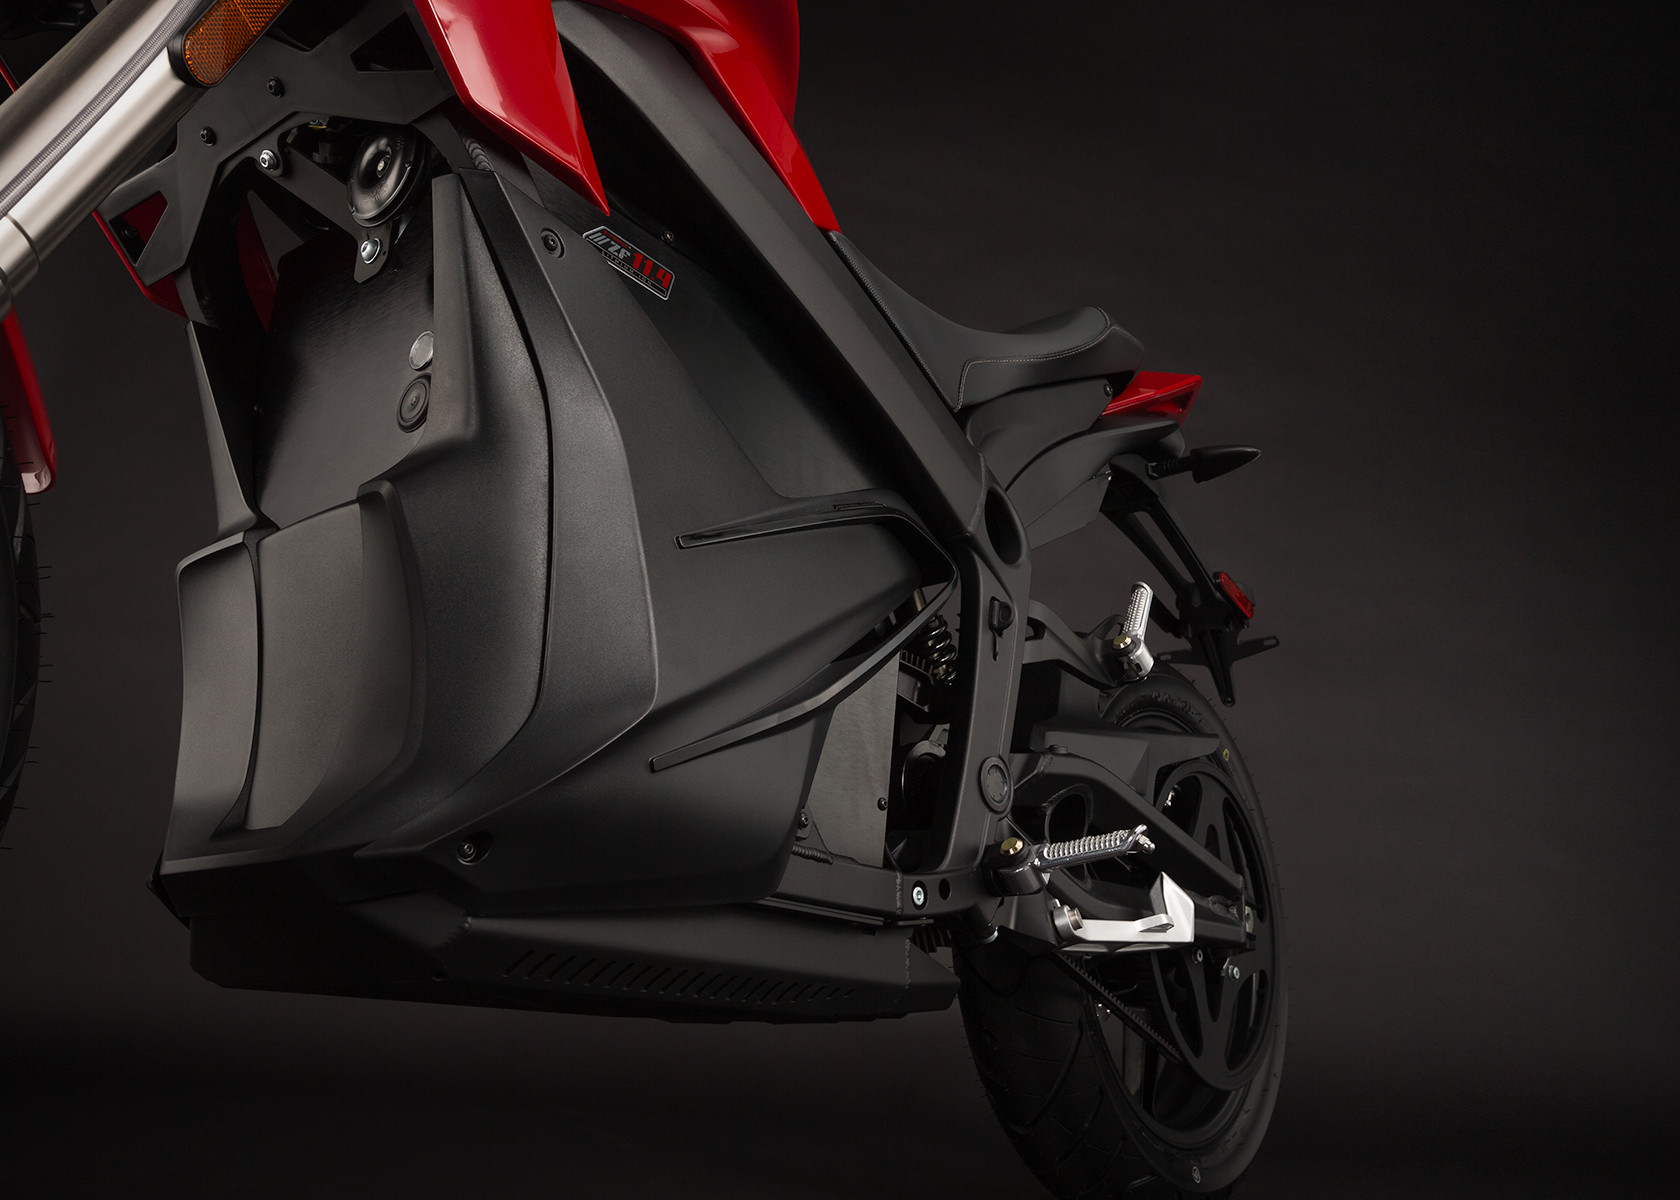 2014 Zero SR Electric Motorcycle: Chin Fairing